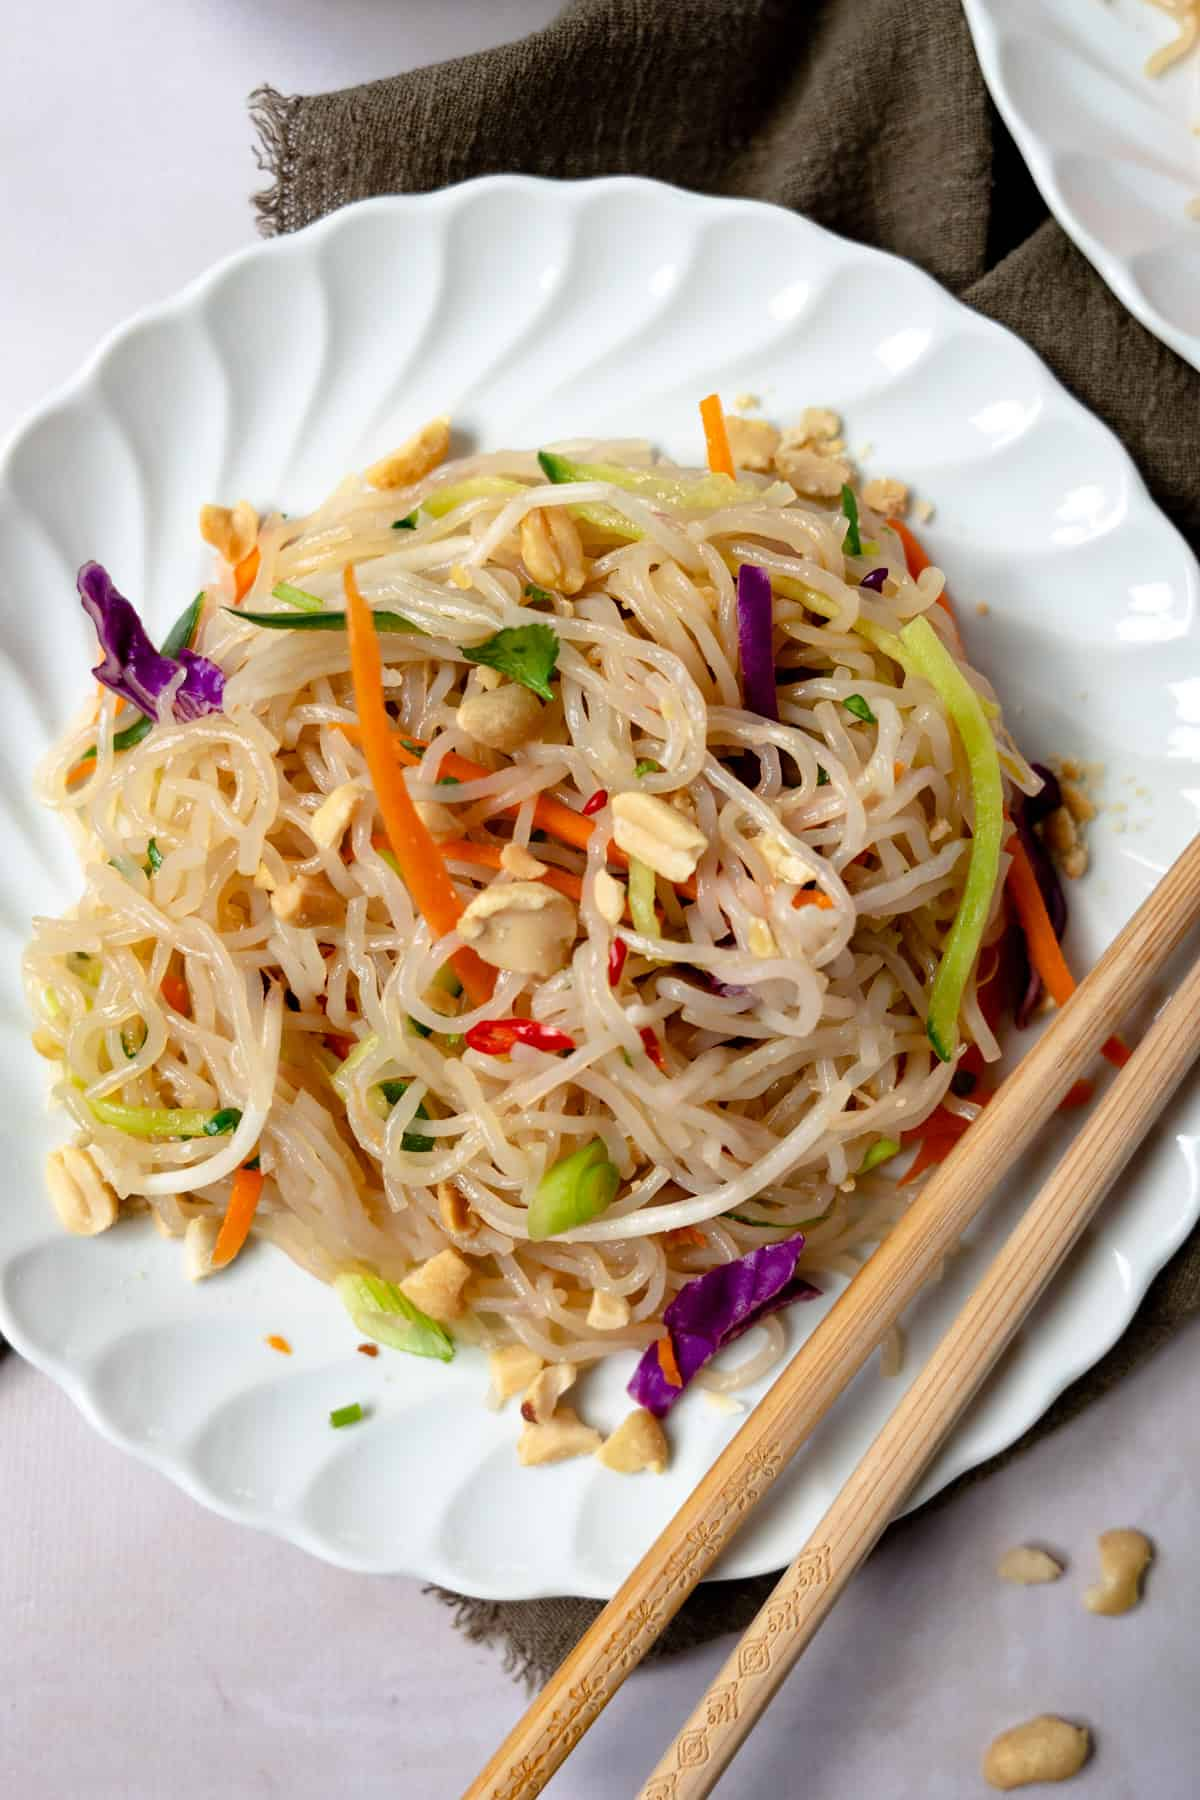 a plate of cold glass noodle salad with chopsticks